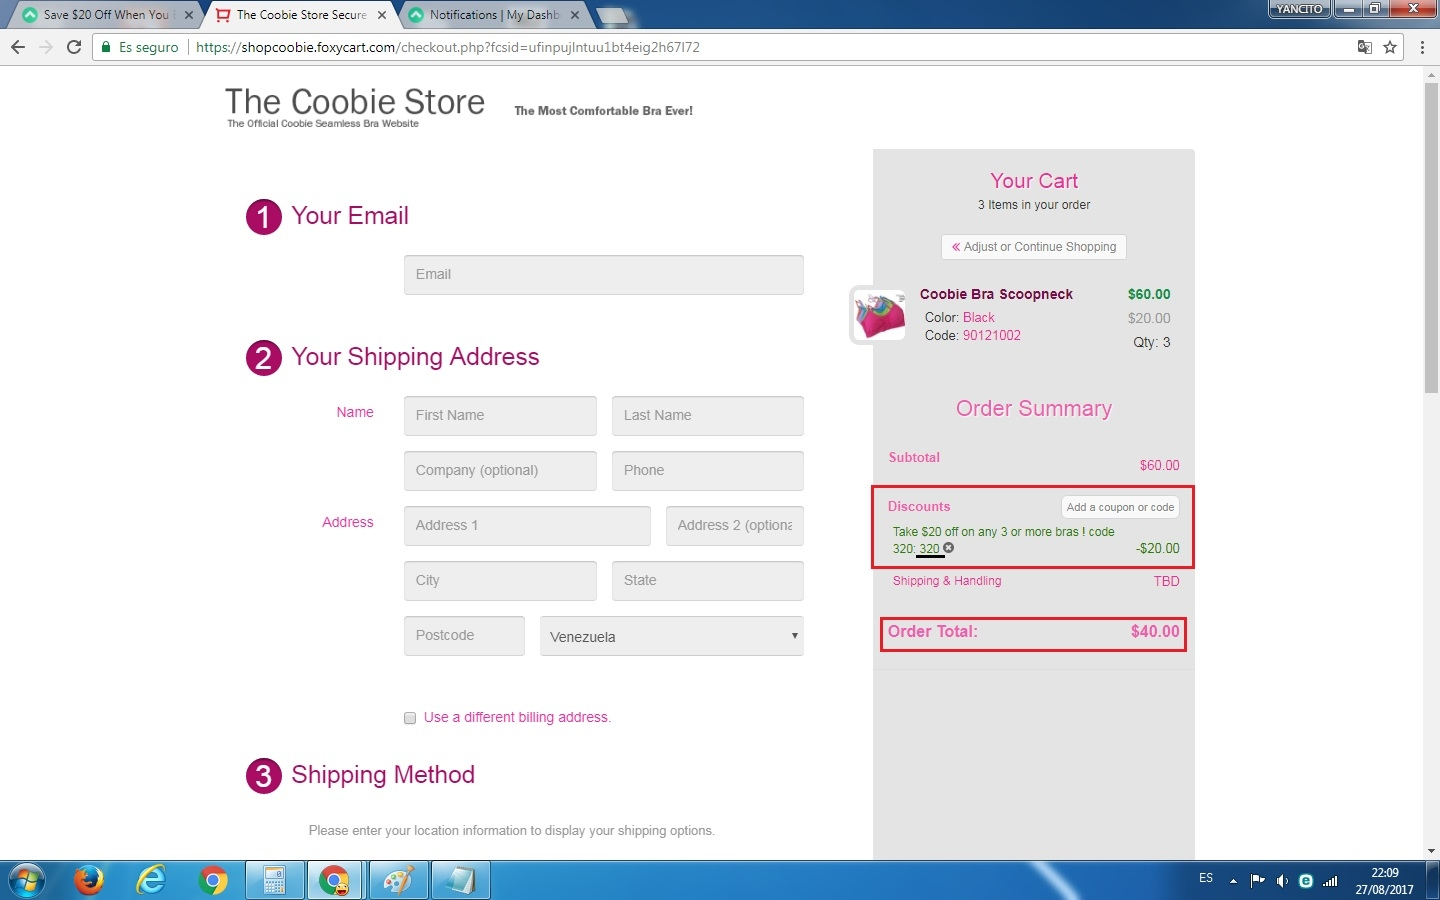 Coobie bra coupon code